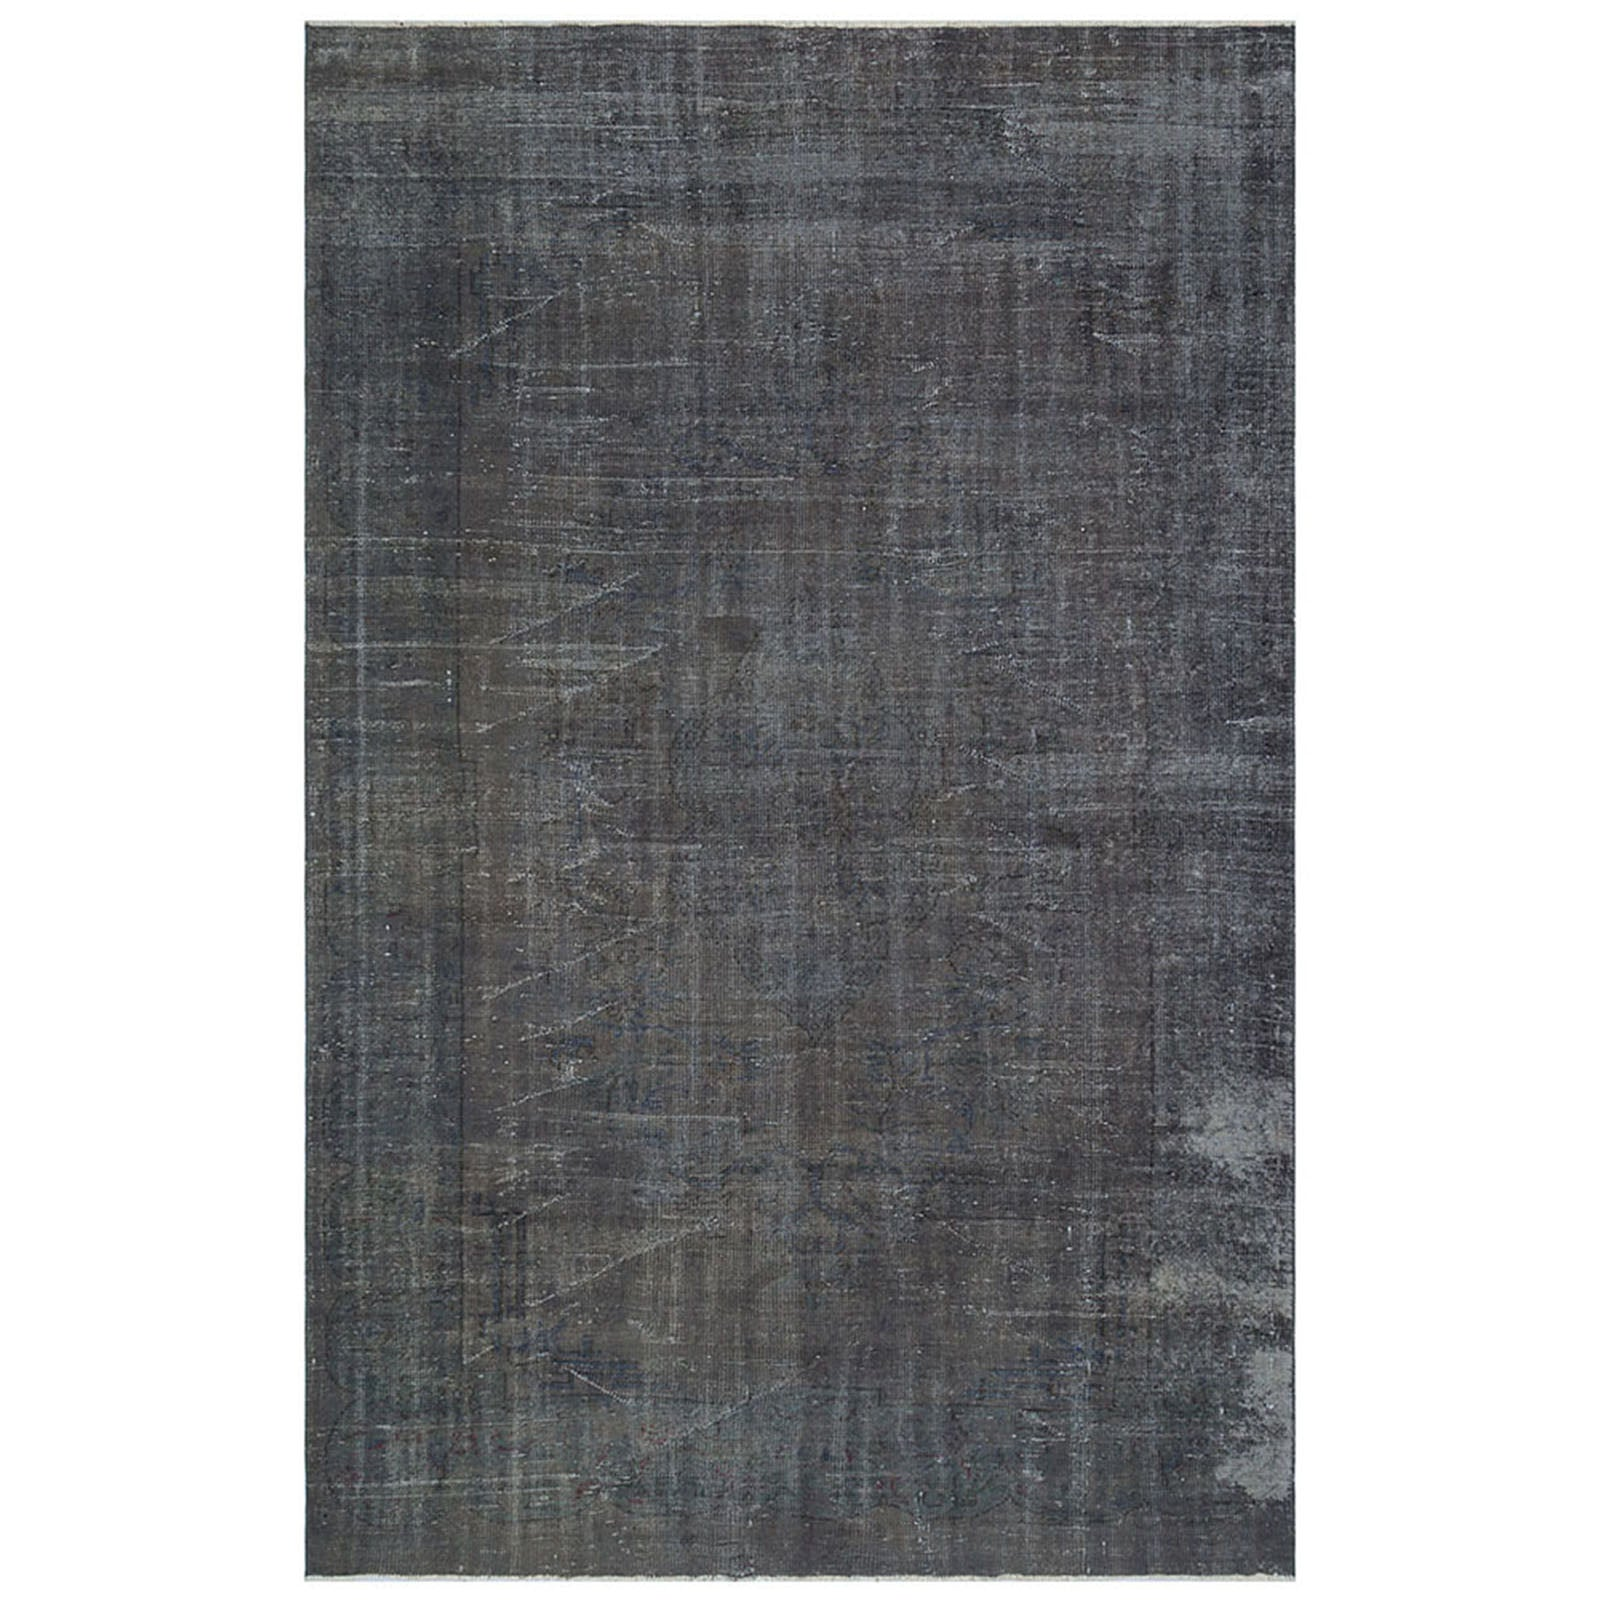 Hali 207X330 CM Bursa Handmade over dyed 2086